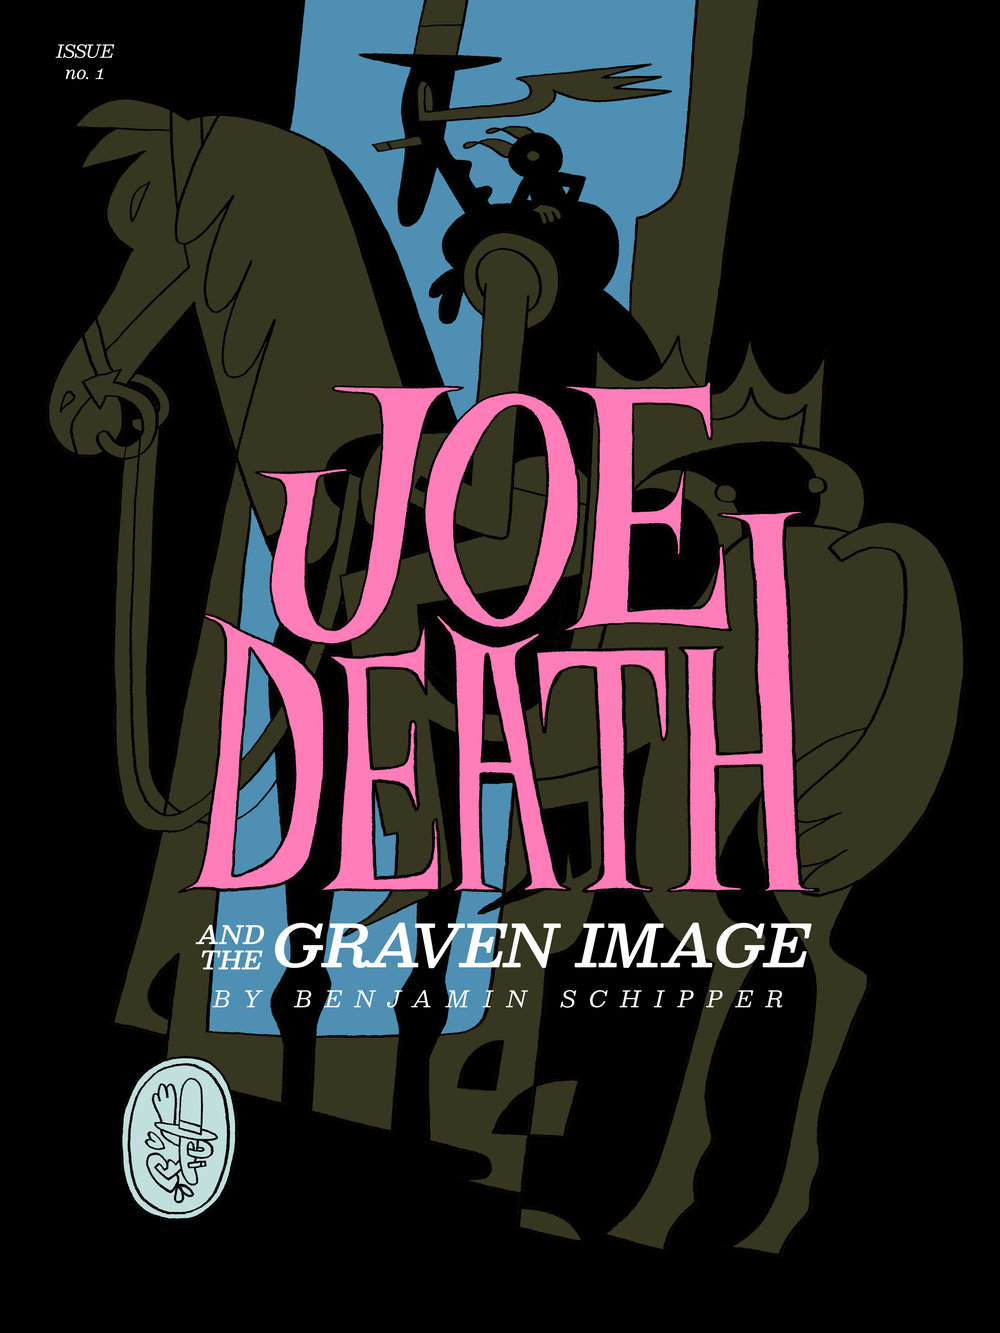 JoeDeath_1_Cover_BenjaminSchipper.jpg